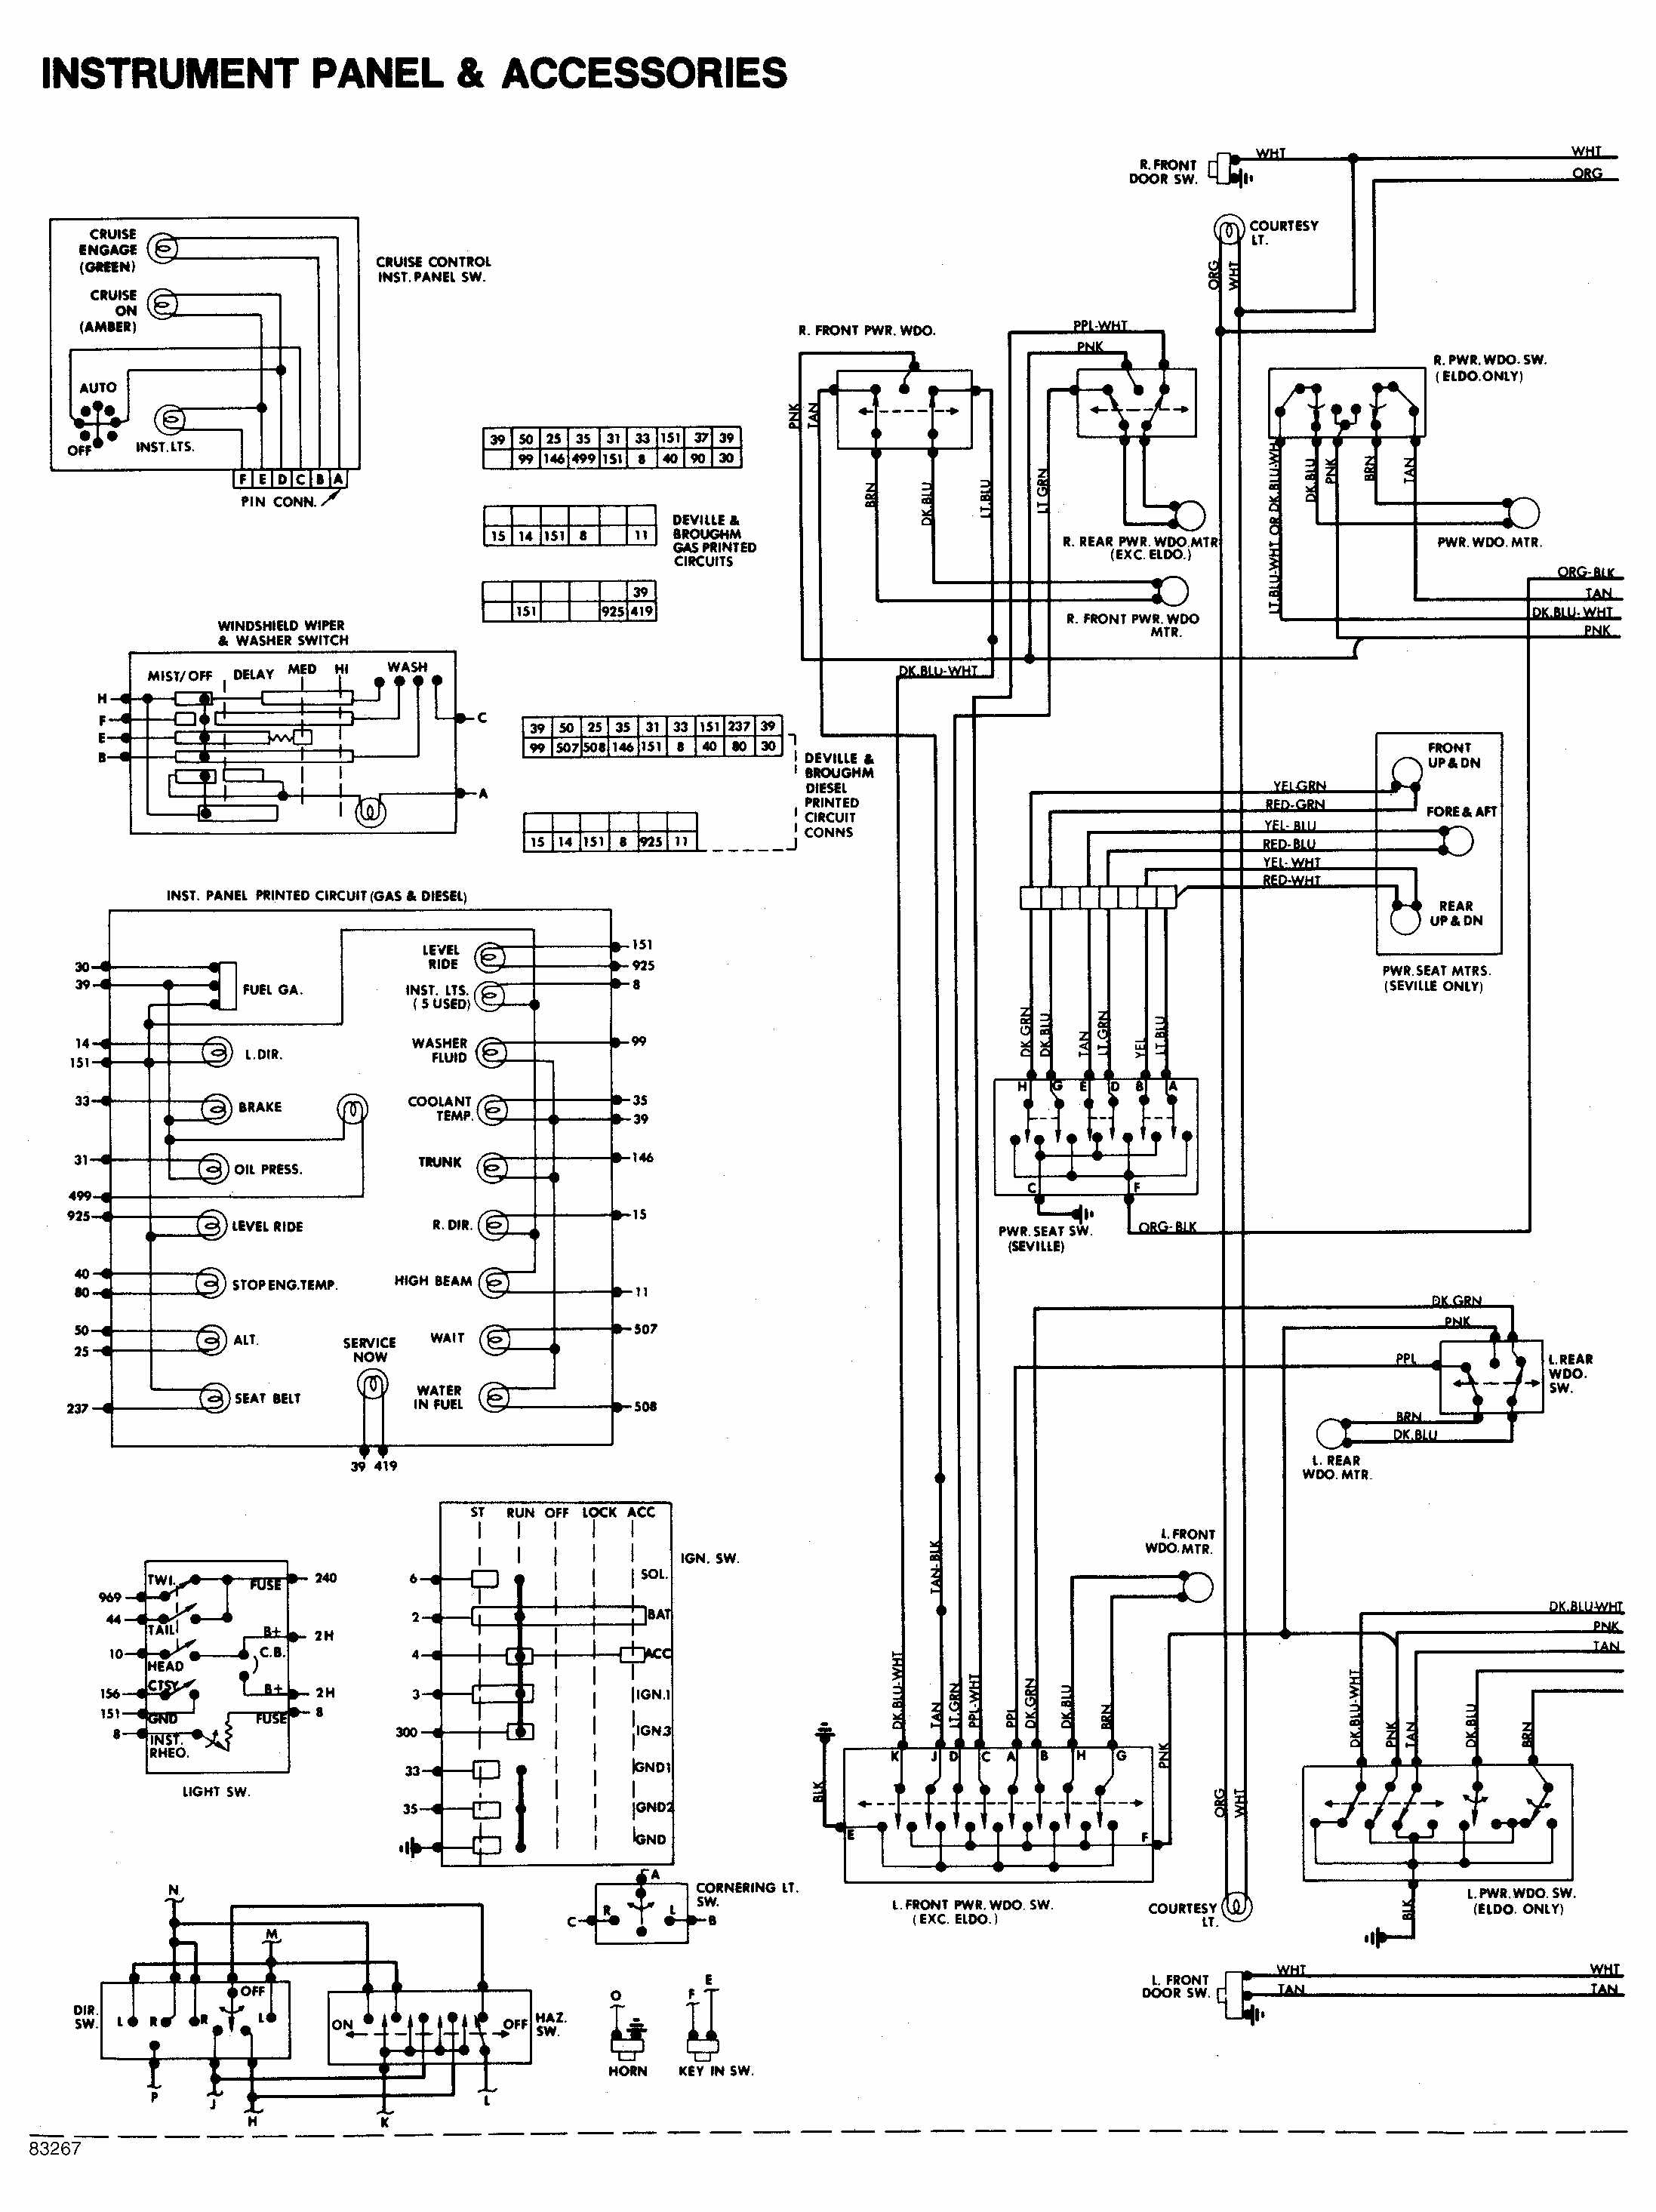 2000 Ford Mustang Fuse Box 1969 Corvette Headlight Wiring Diagram Schemes Chevy Diagrams Chassis